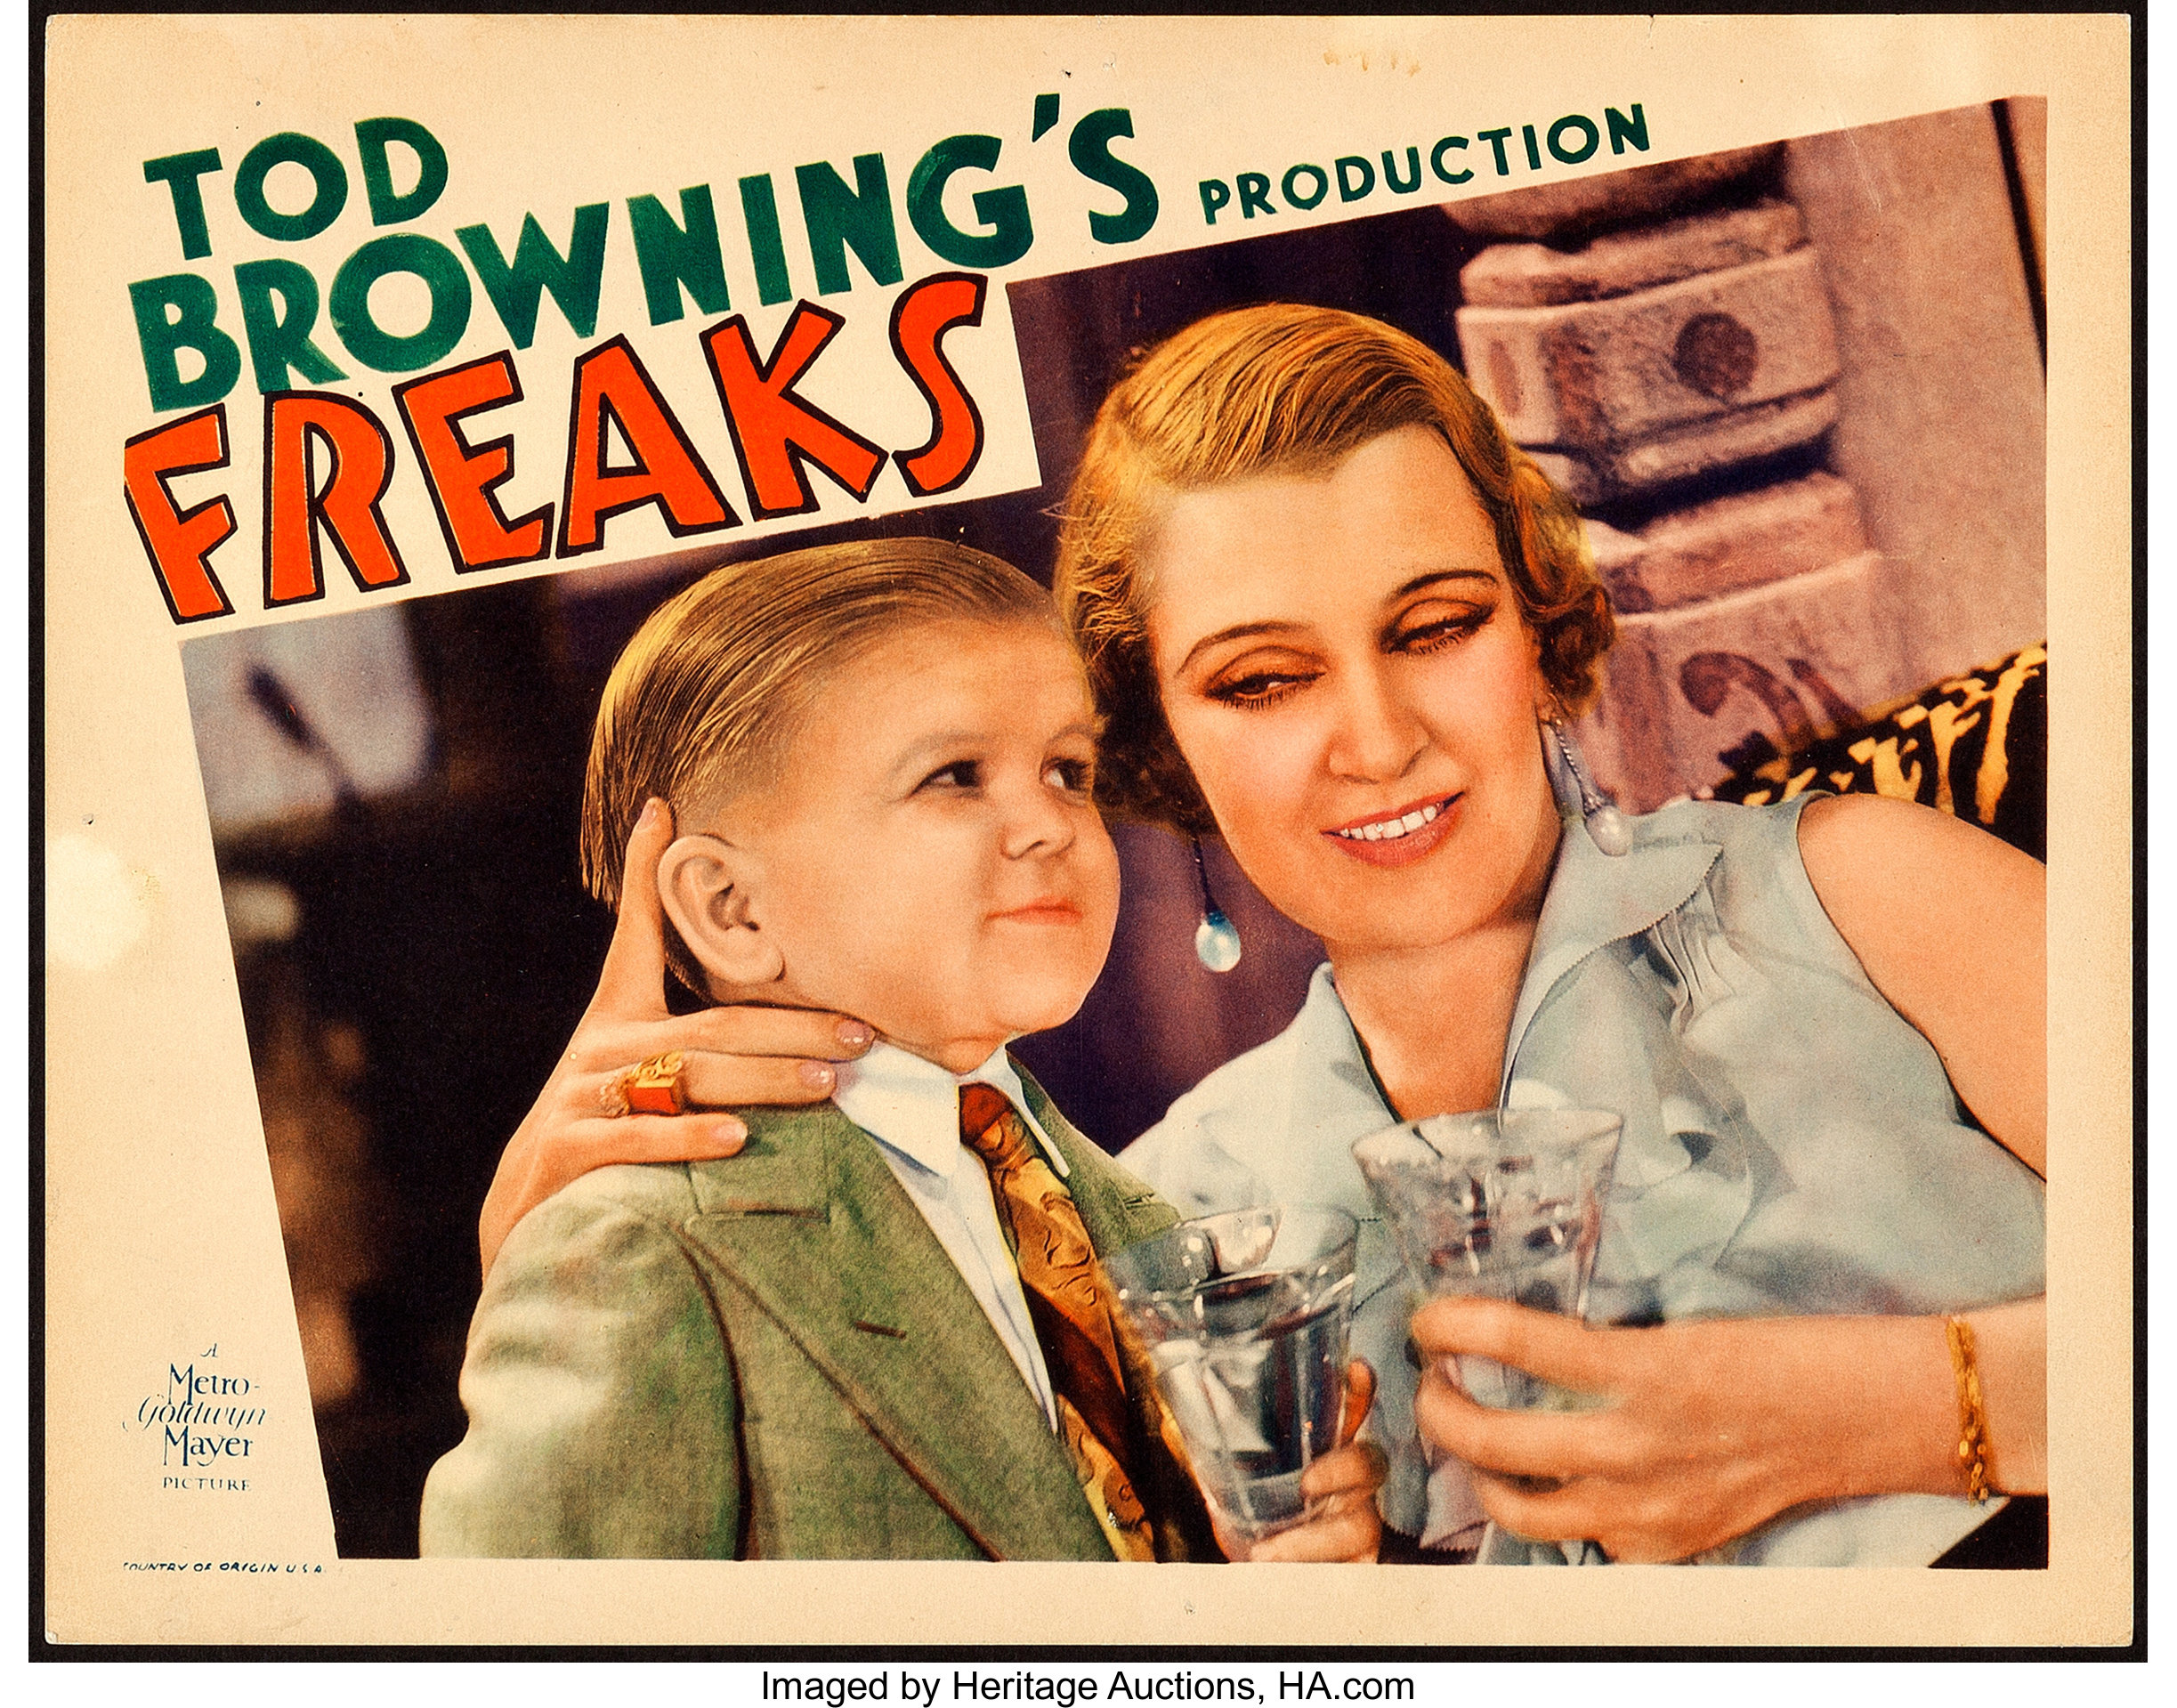 A scarce lobby card from Tod Browning's notorious 1932 film, Frreaks, sold at Heritage Auctions for $15,600.